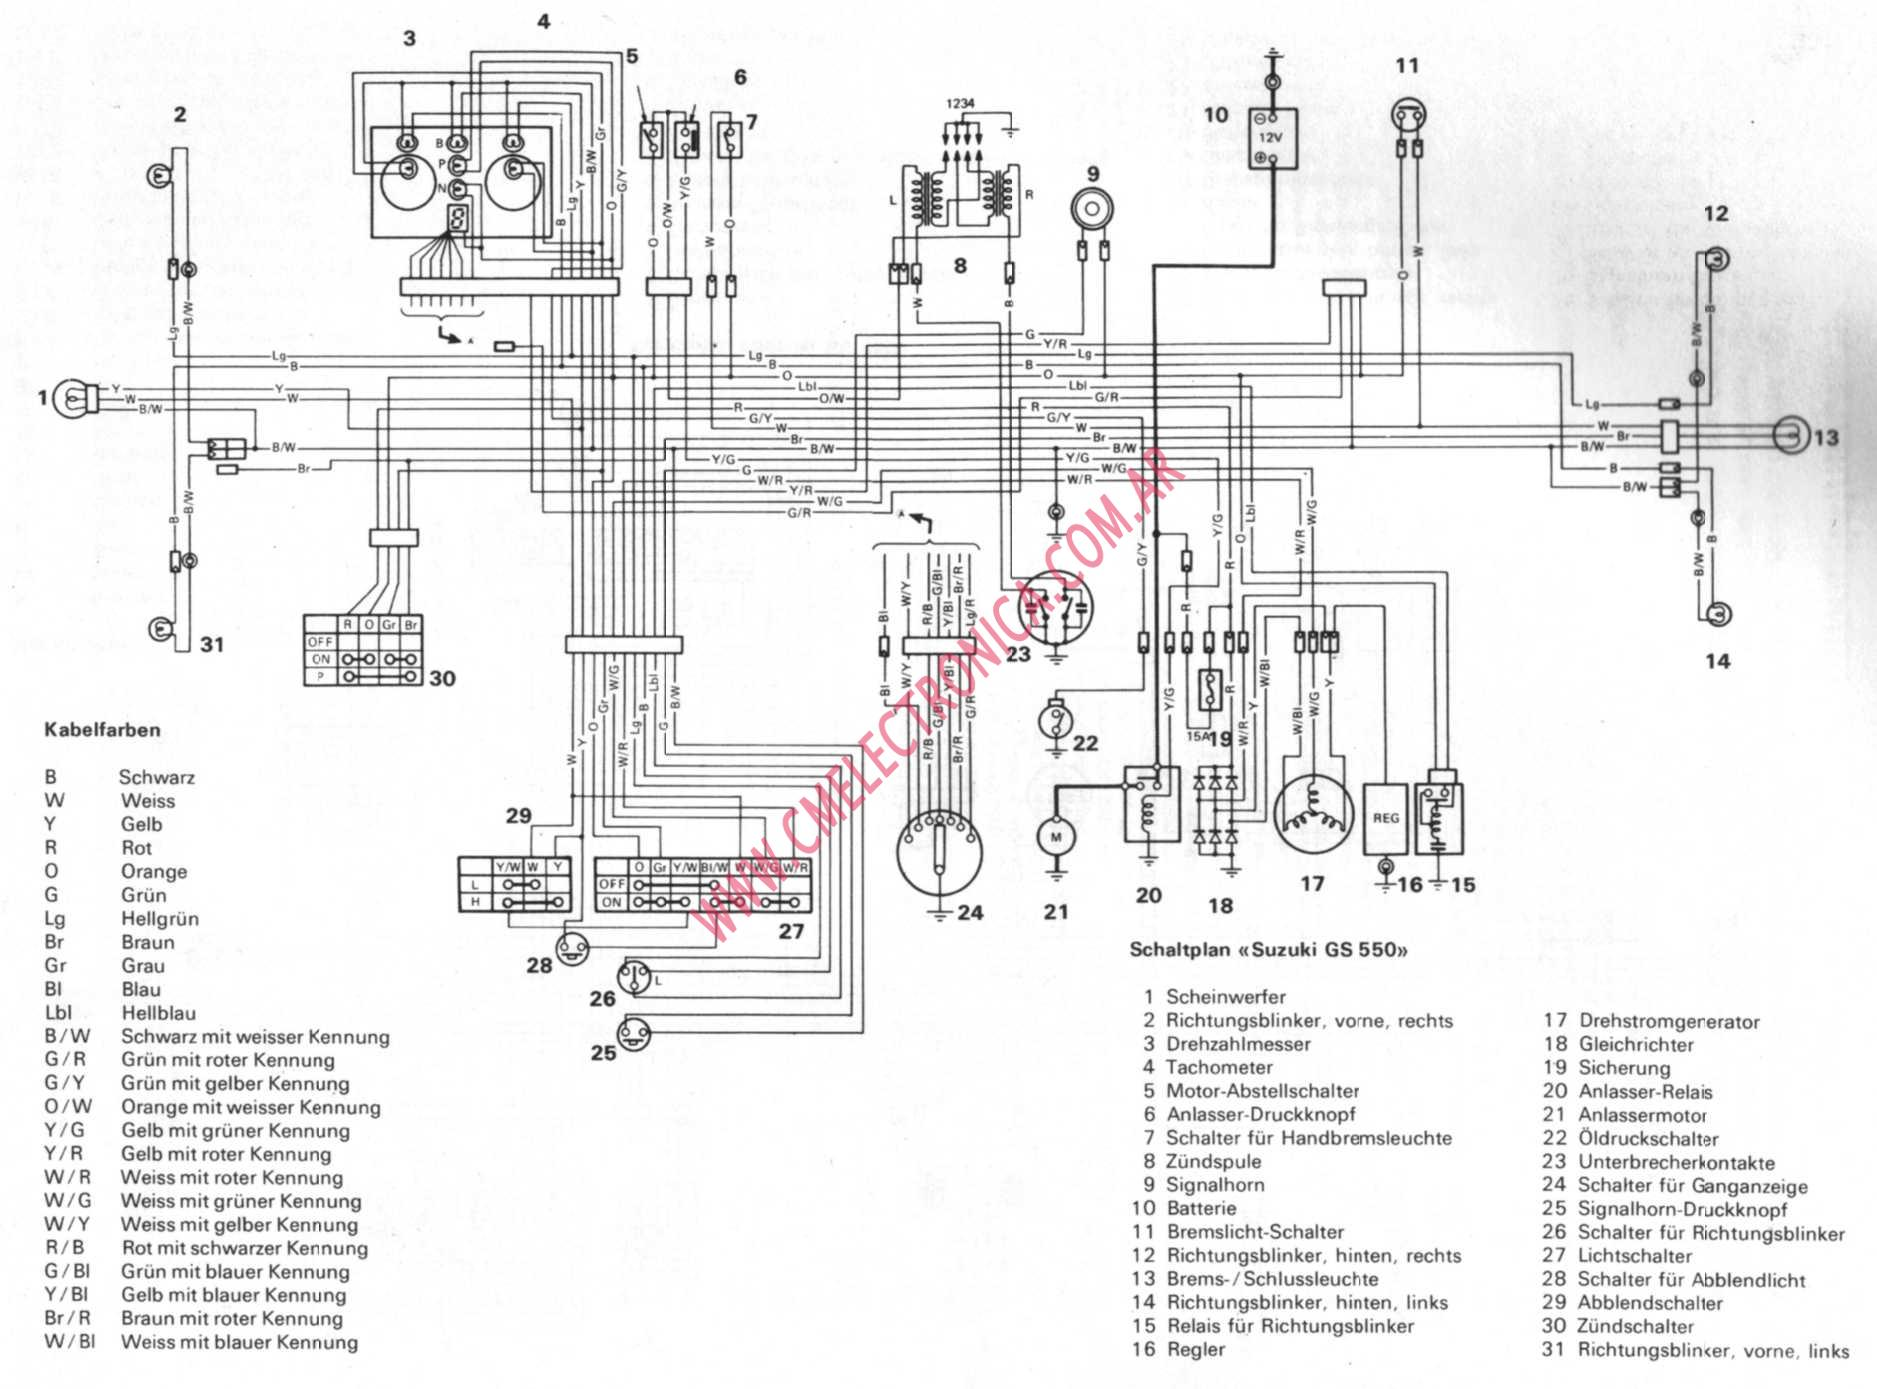 suzuki gs550 suzuki gs550 wiring diagram efcaviation com 1982 suzuki gs550l wiring diagrams at gsmx.co